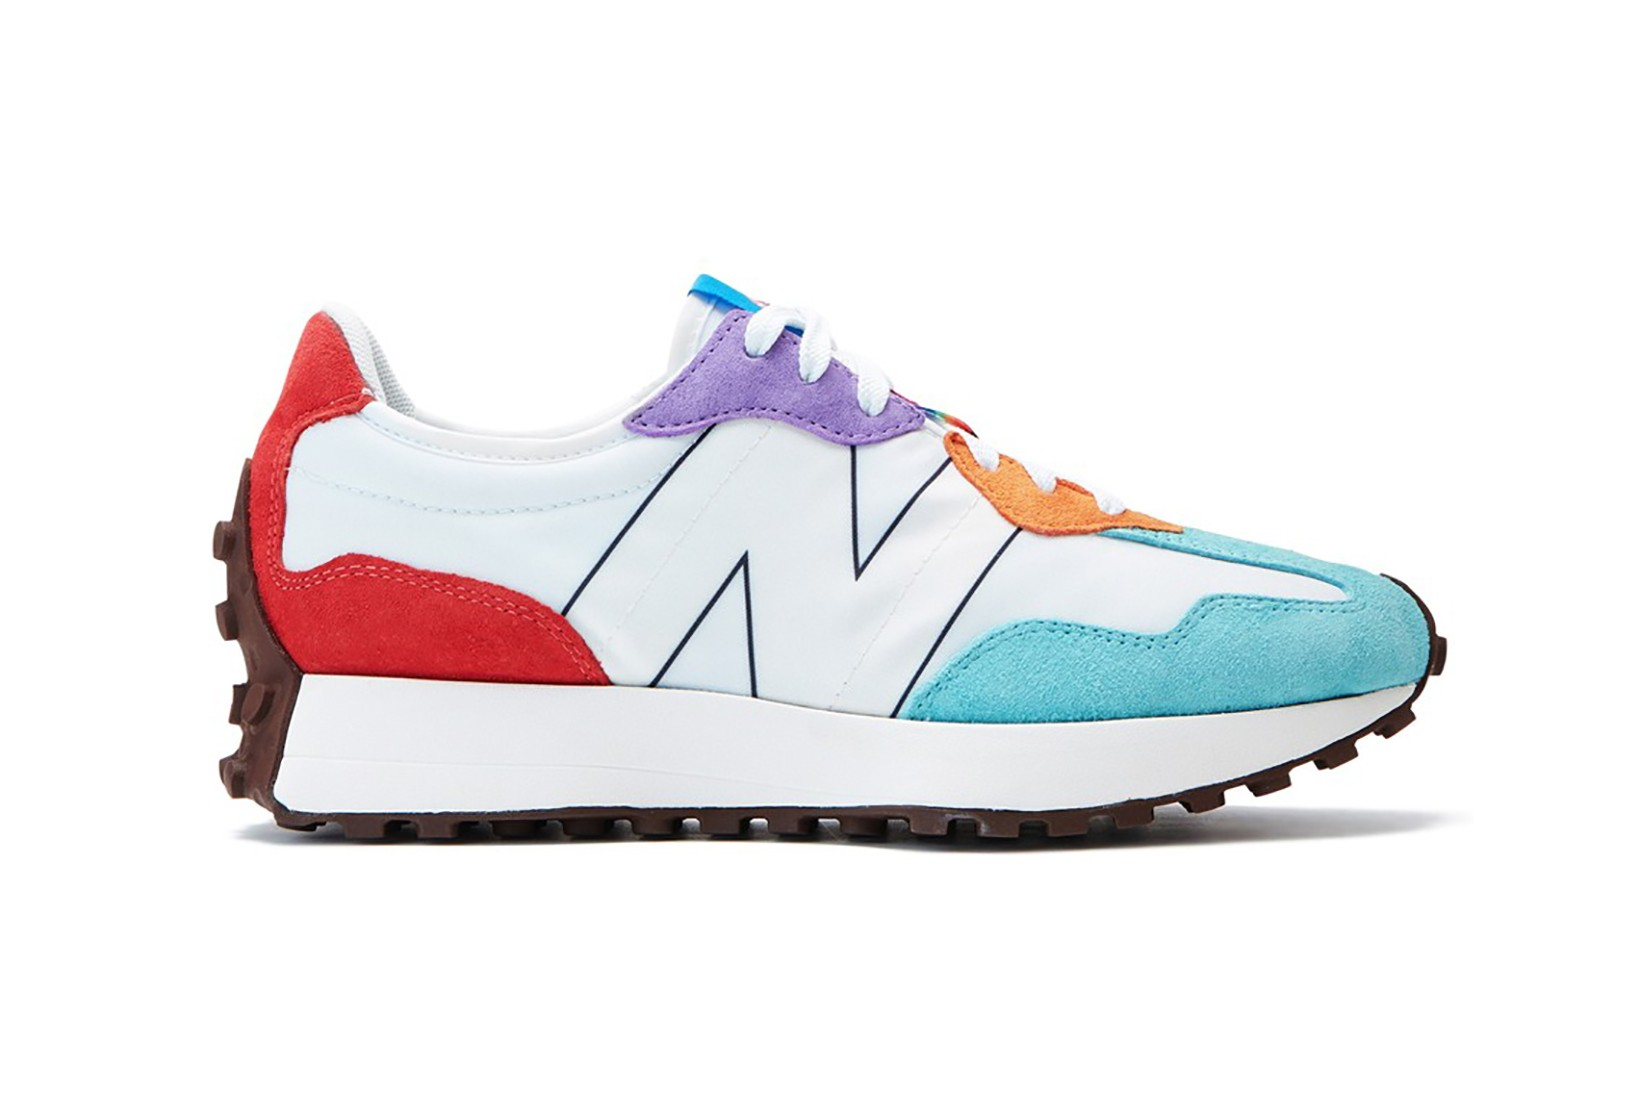 New Balance Honors Pride with 327